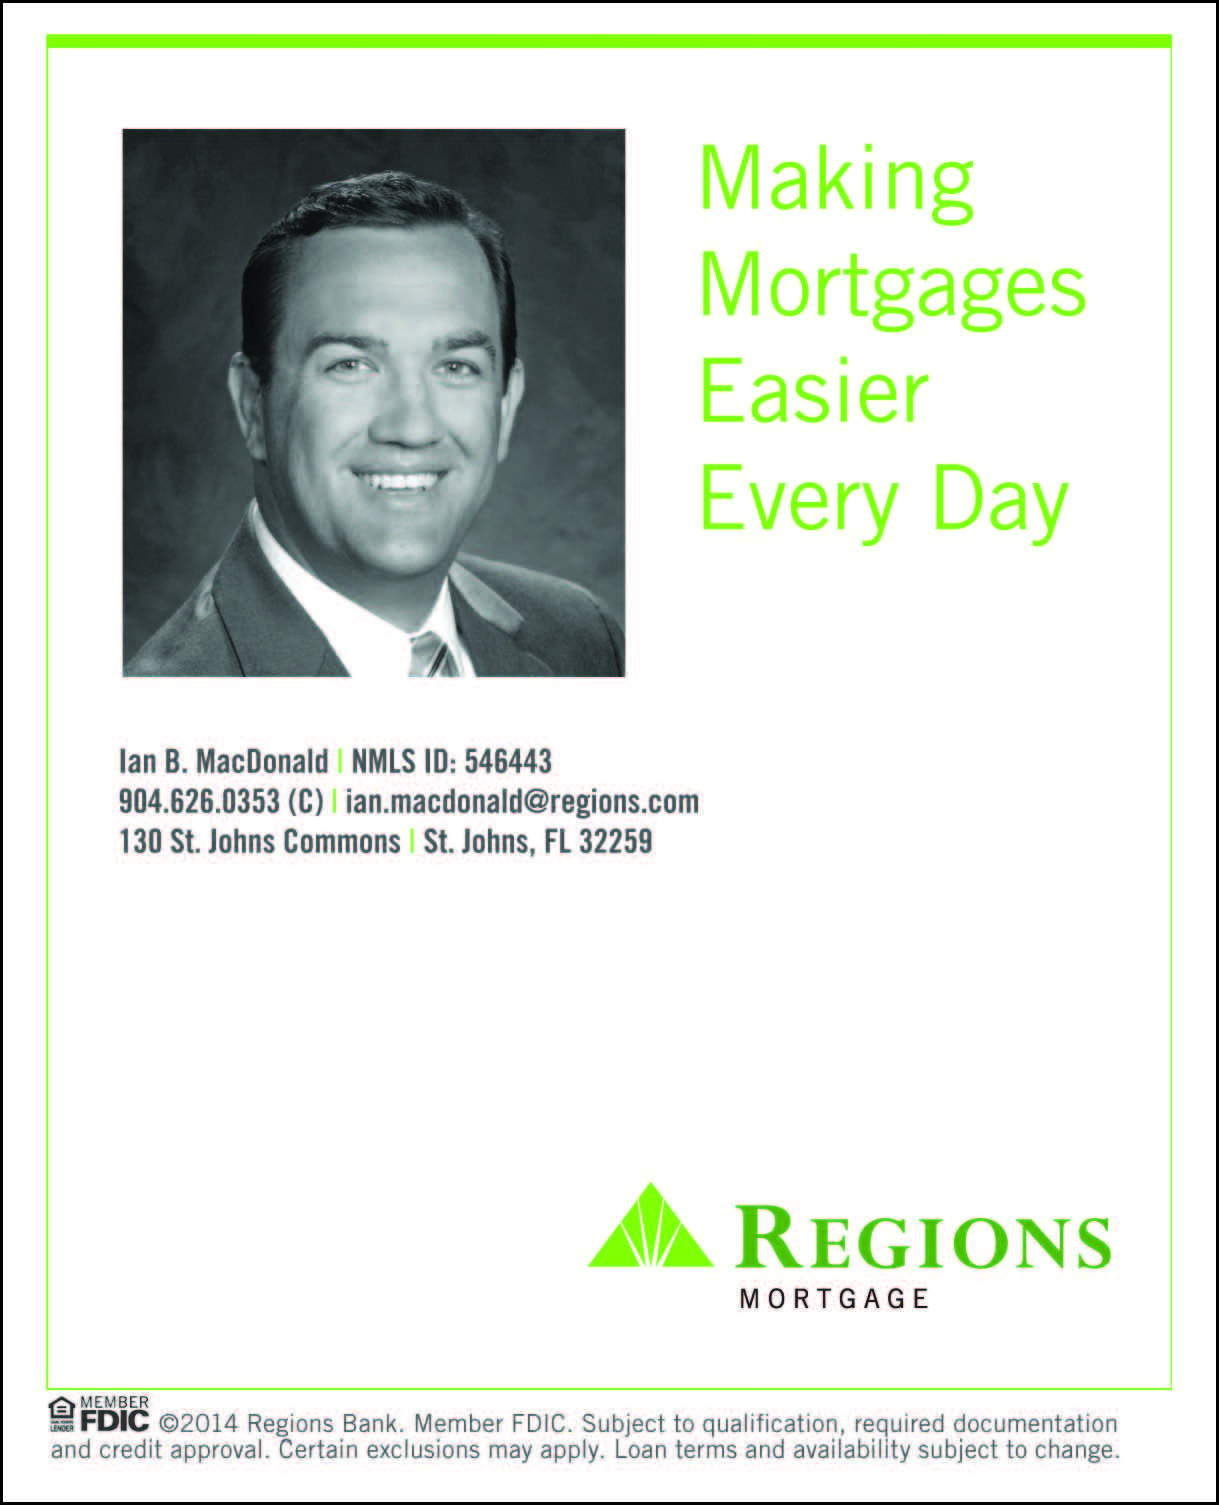 Mortgage Consultant Ian MacDonald Regions Bank How to